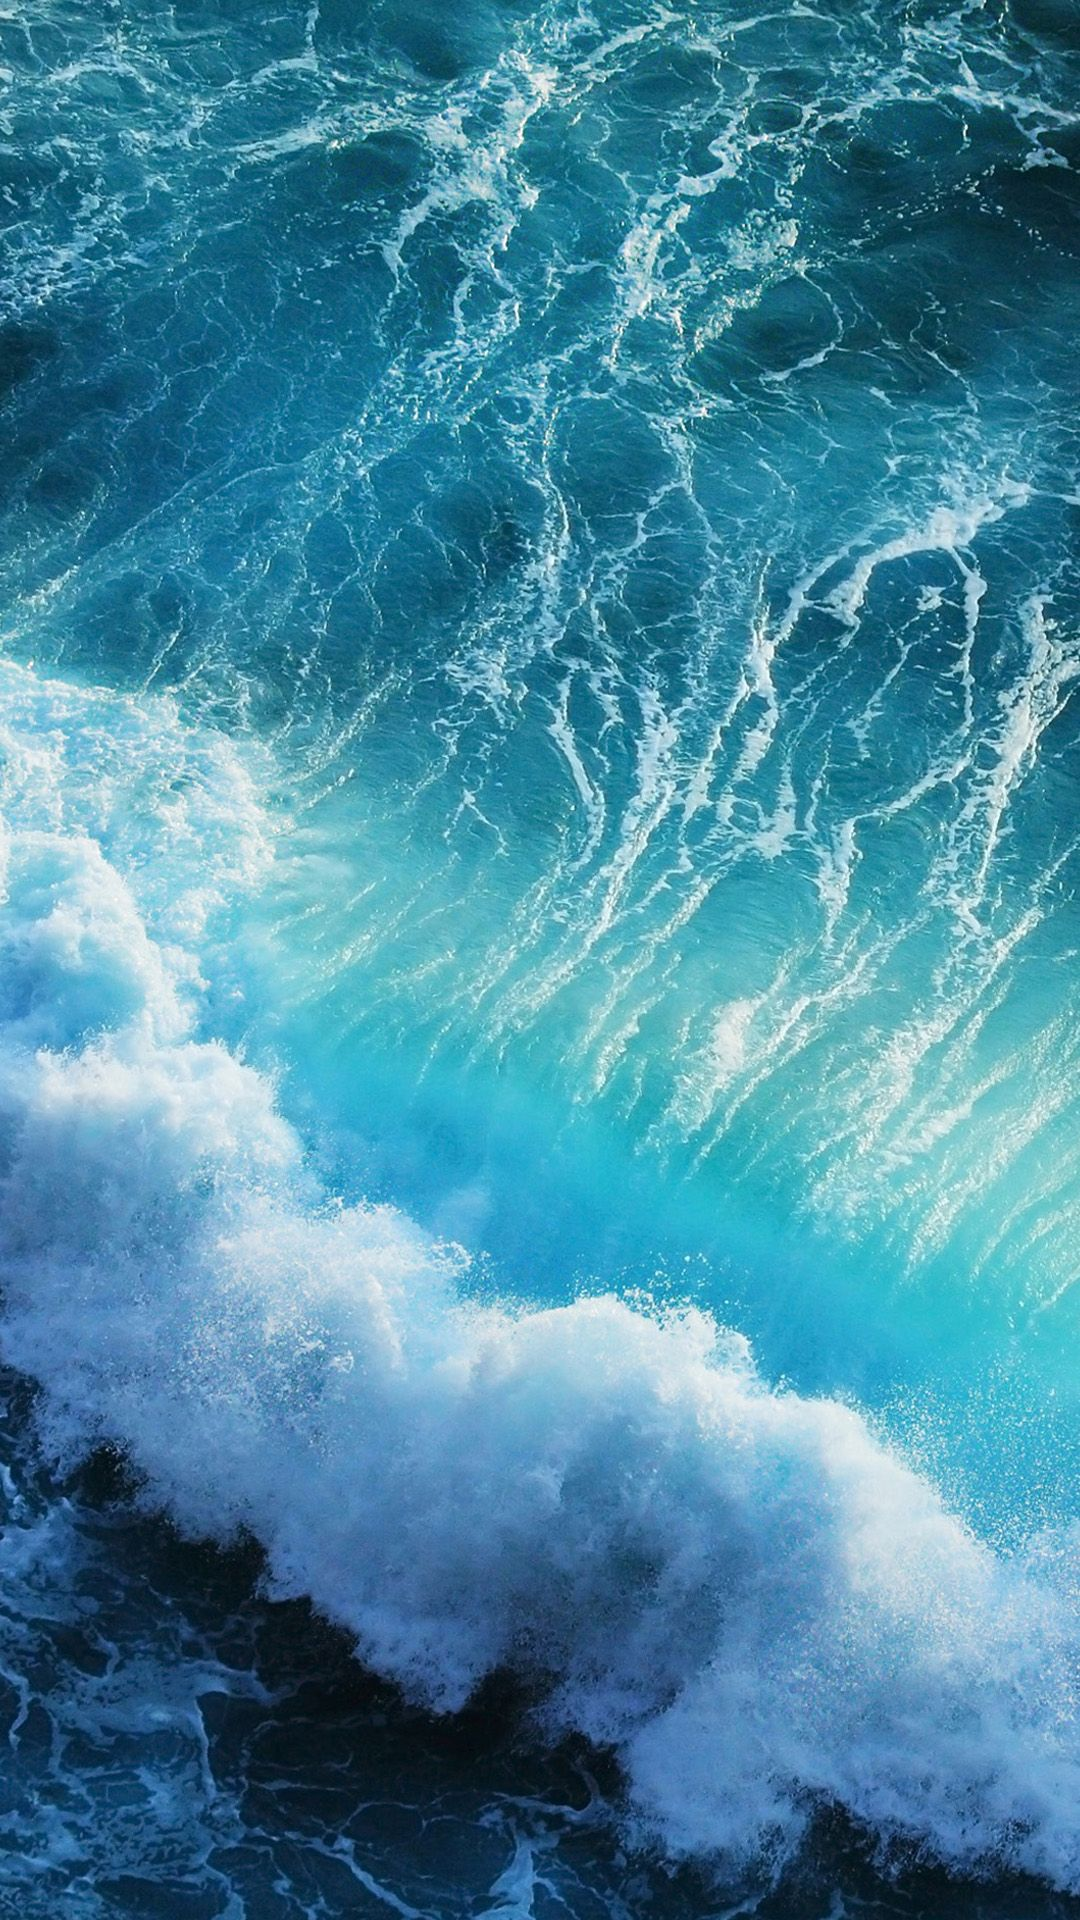 Blue sea water wallpapers for iphone 6 plus Watery